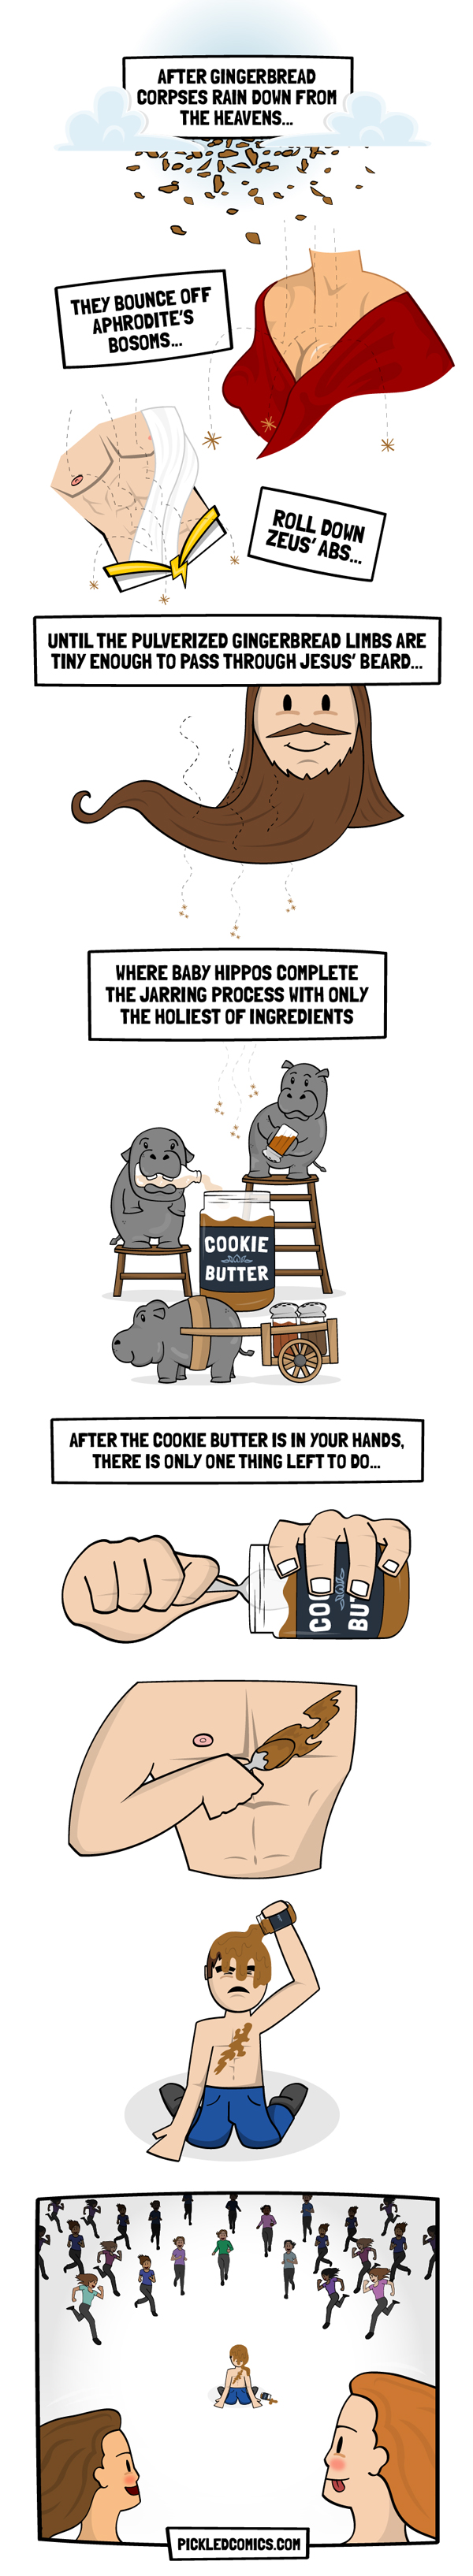 Cooke-Butter-02-Comic